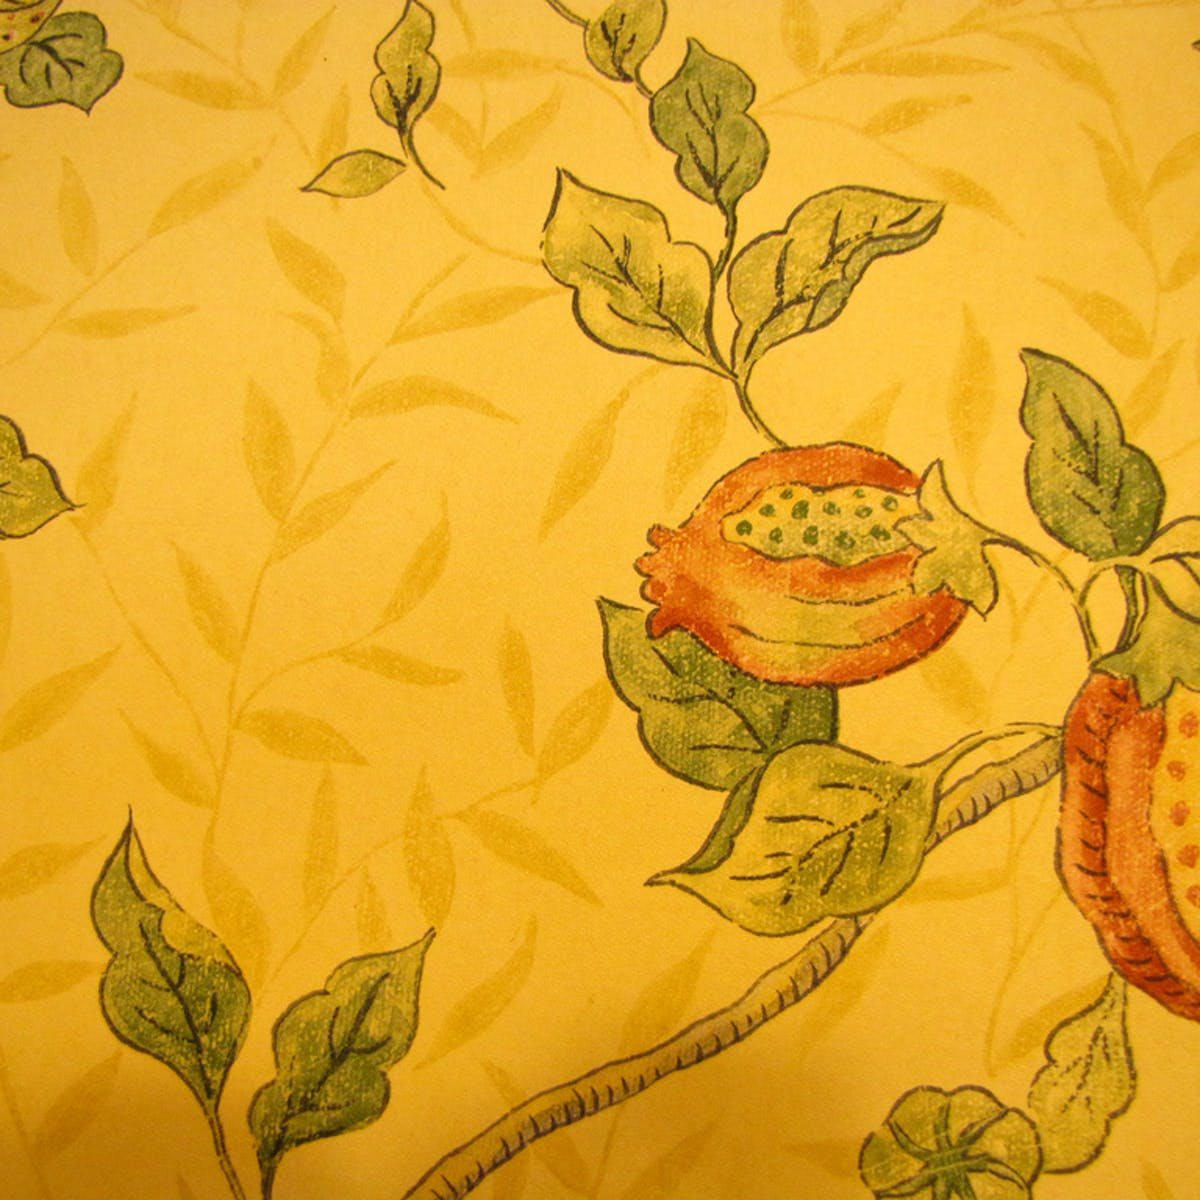 The Yellow Wallpaper A 19th Century Short Story Of Nervous